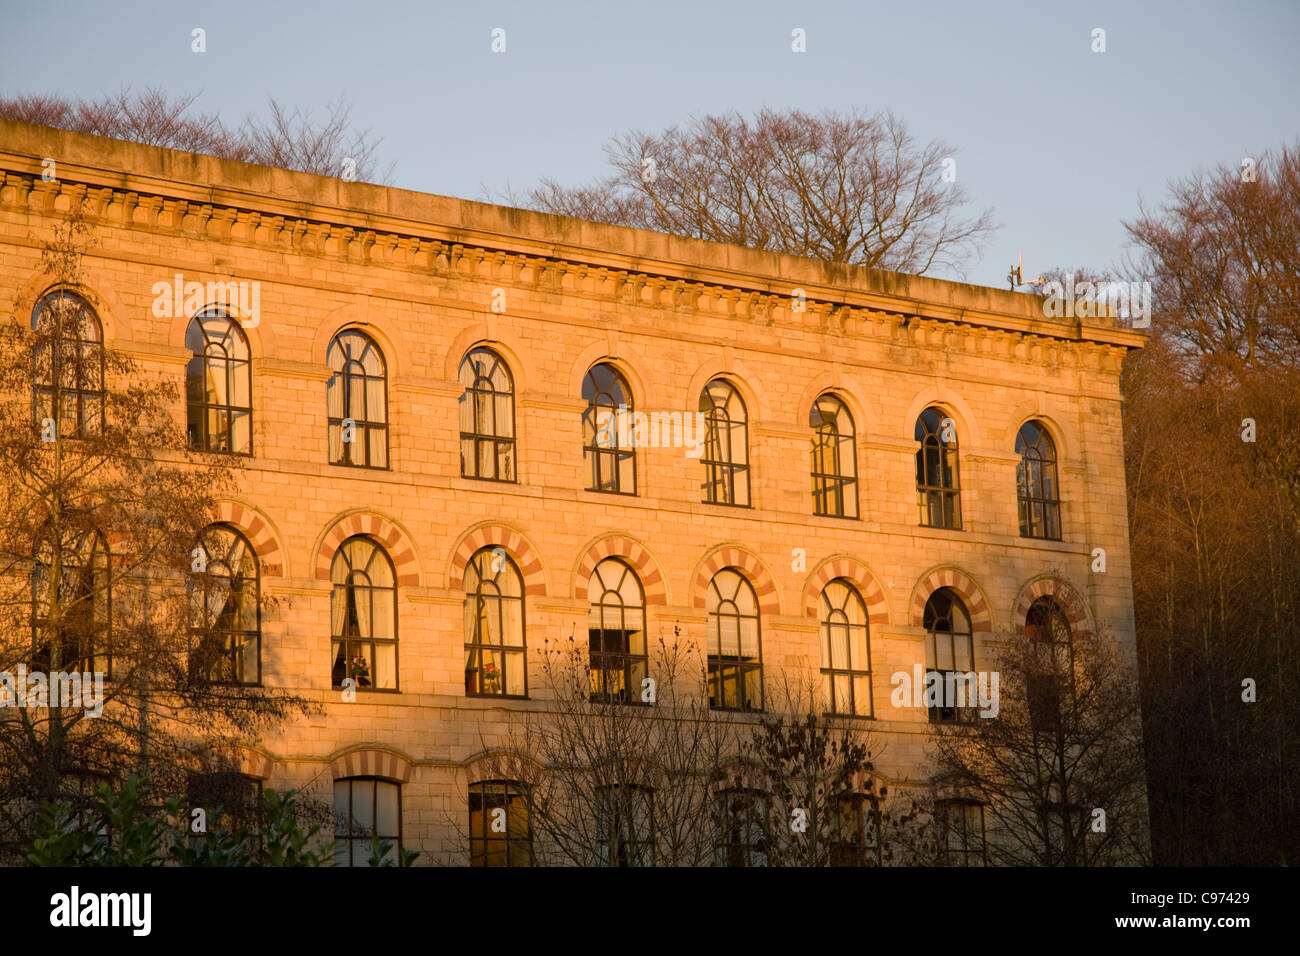 former cotton mill turned into modern apartment building in ramsbottom,lancashire,england - Stock Image